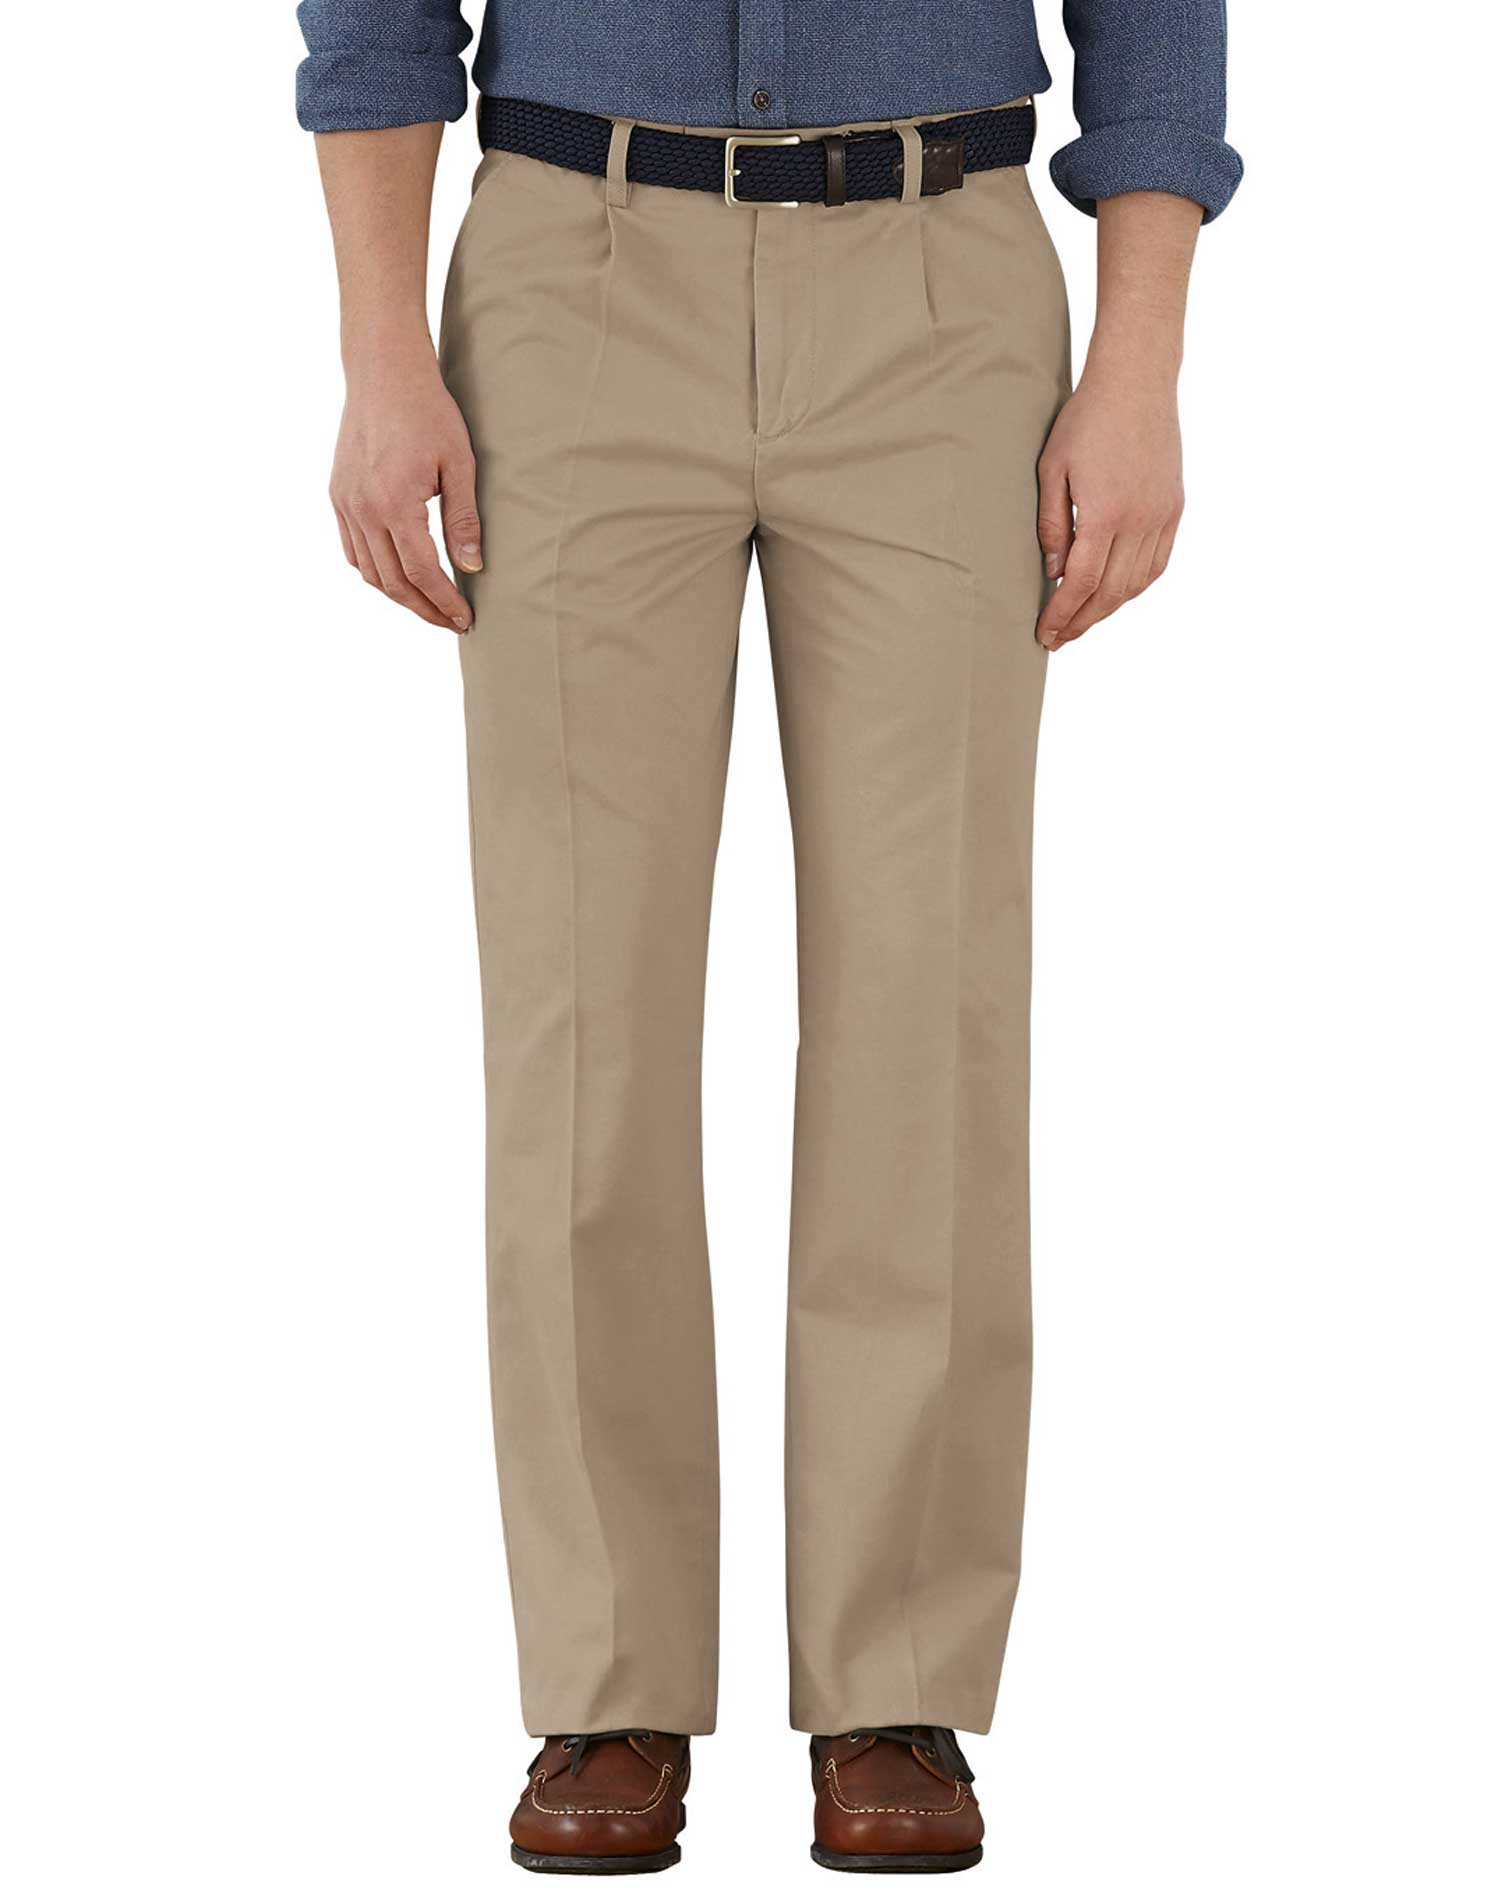 Stone Classic Fit Single Pleat Weekend Cotton Chino Trousers Size W40 L32 by Charles Tyrwhitt